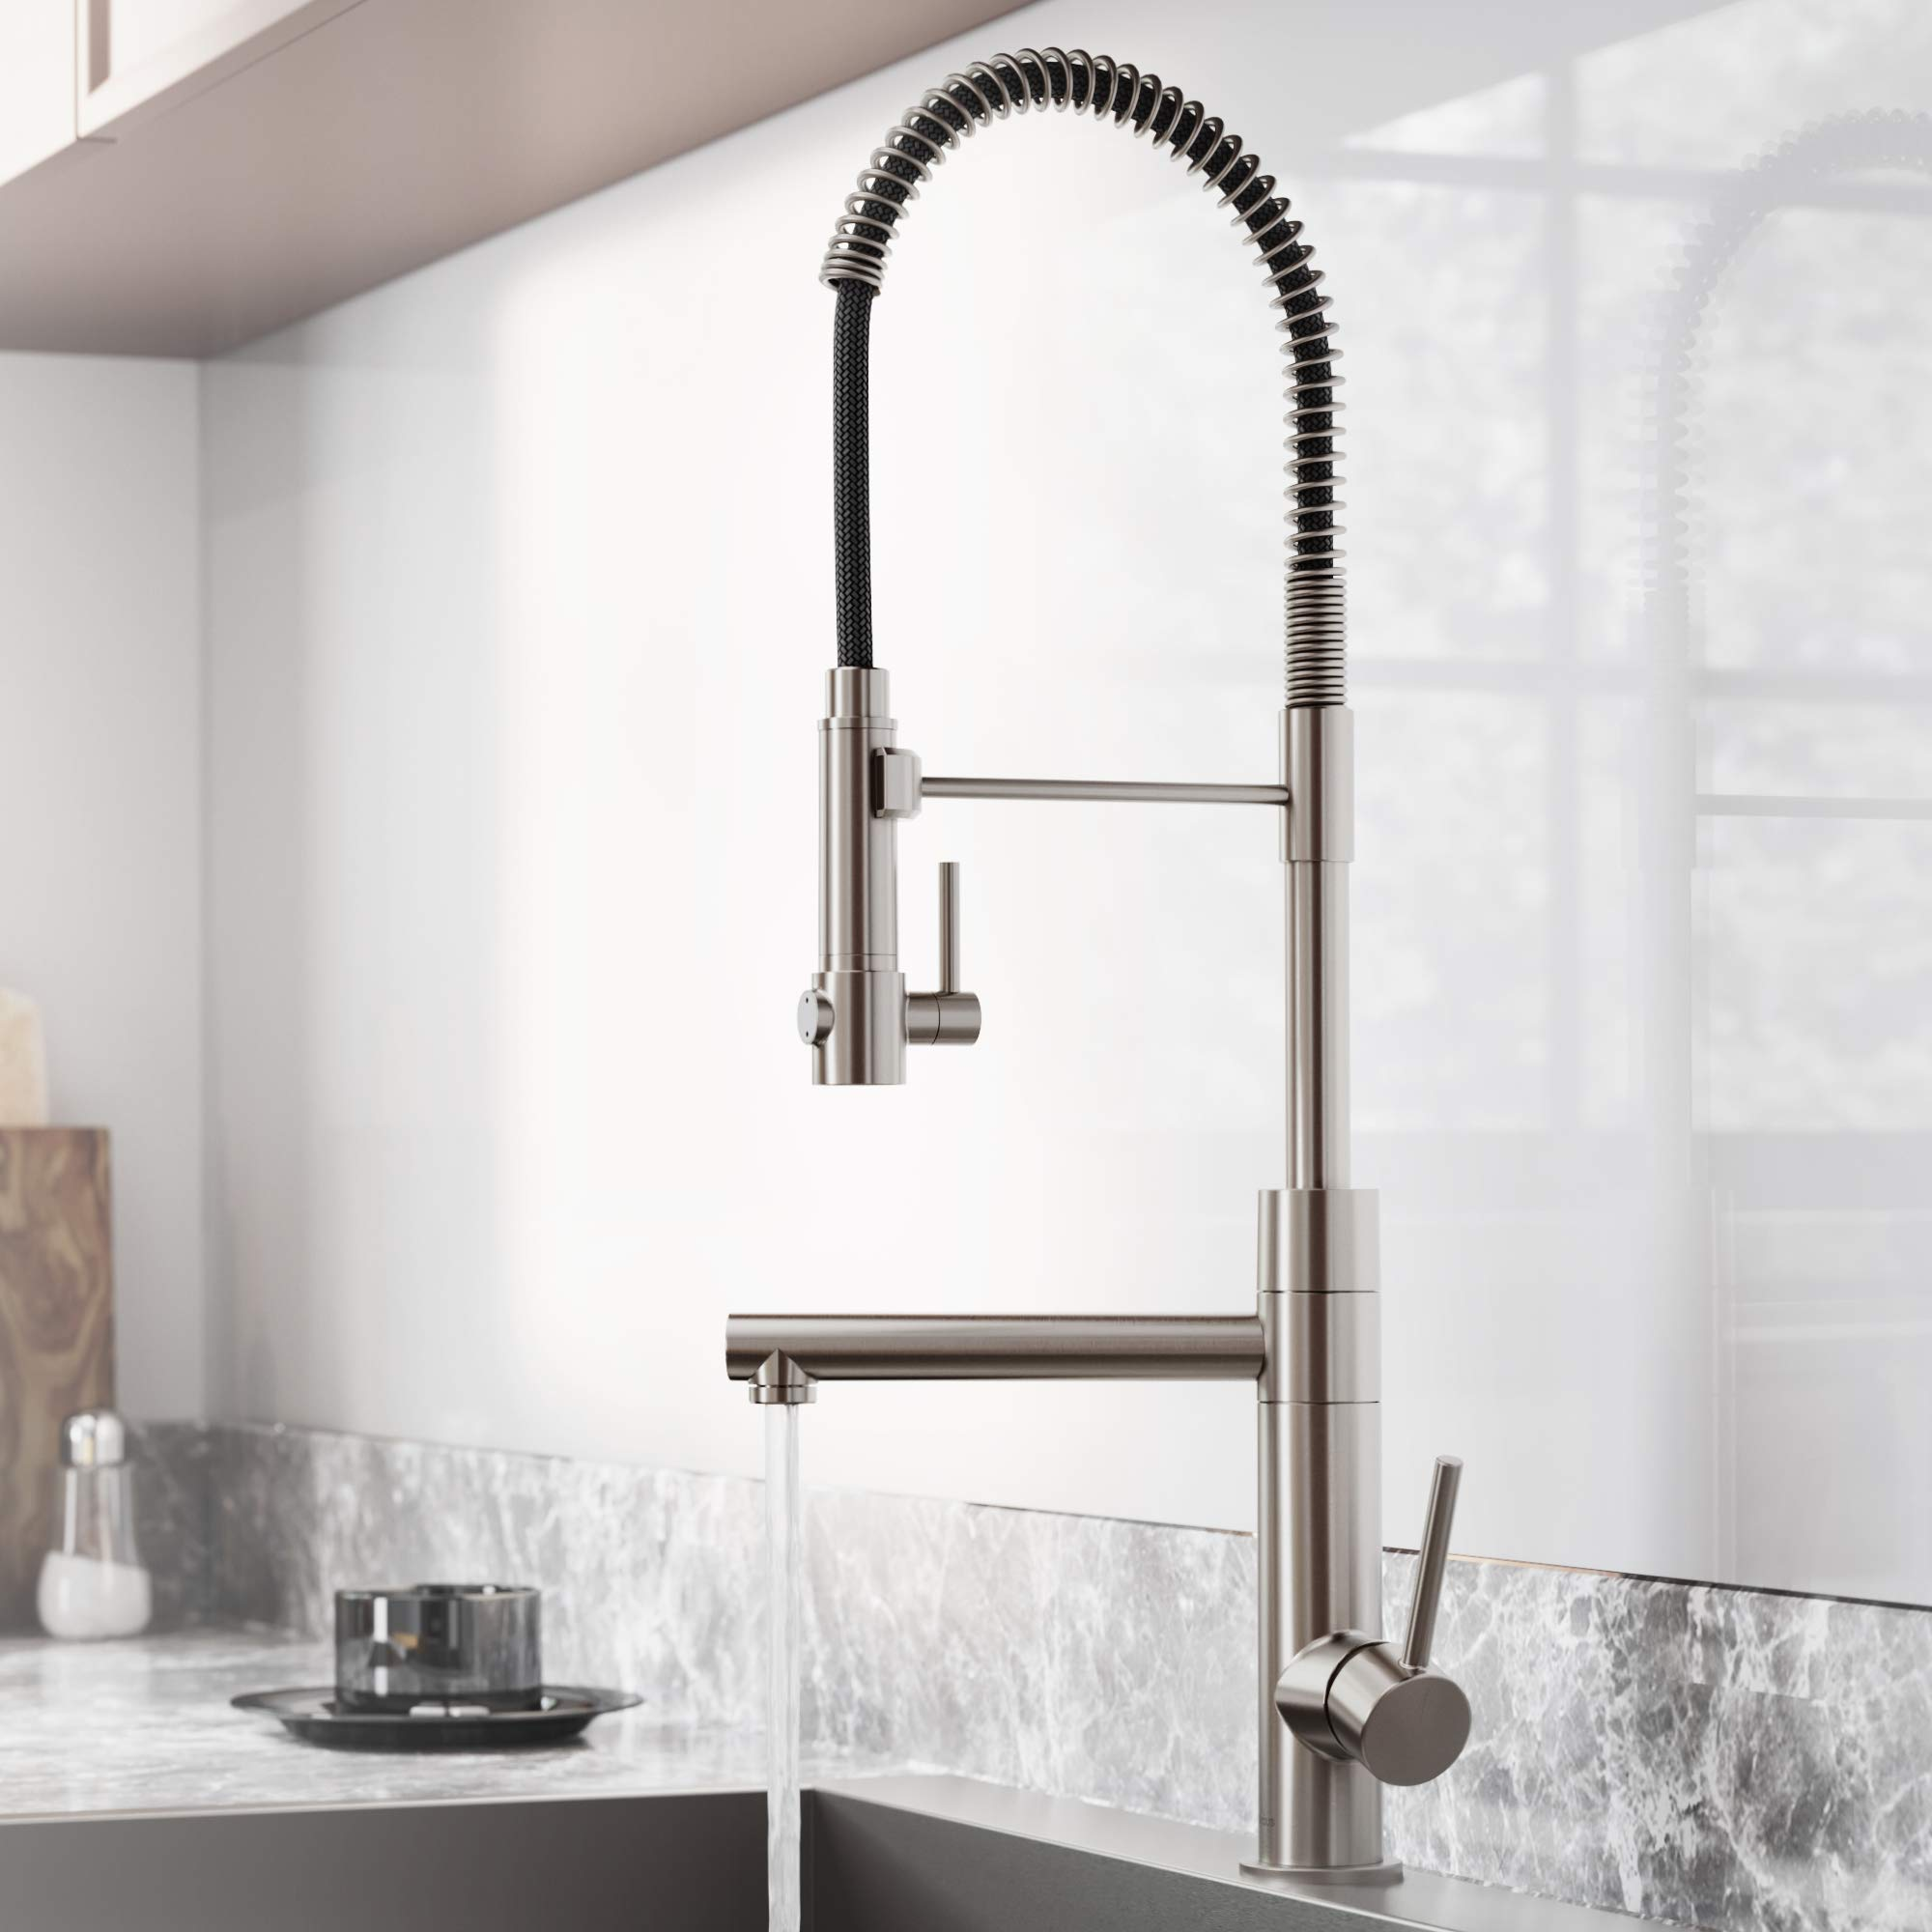 Kraus KPF-1603SFS Atrec Pro Spot Free Stainless Steel Finish 2-Function Commercial Style Pre-Rinse Kitchen Faucet with Pull-Down Spring Spout and Pot Filler, 24.75 Inch, by Kraus